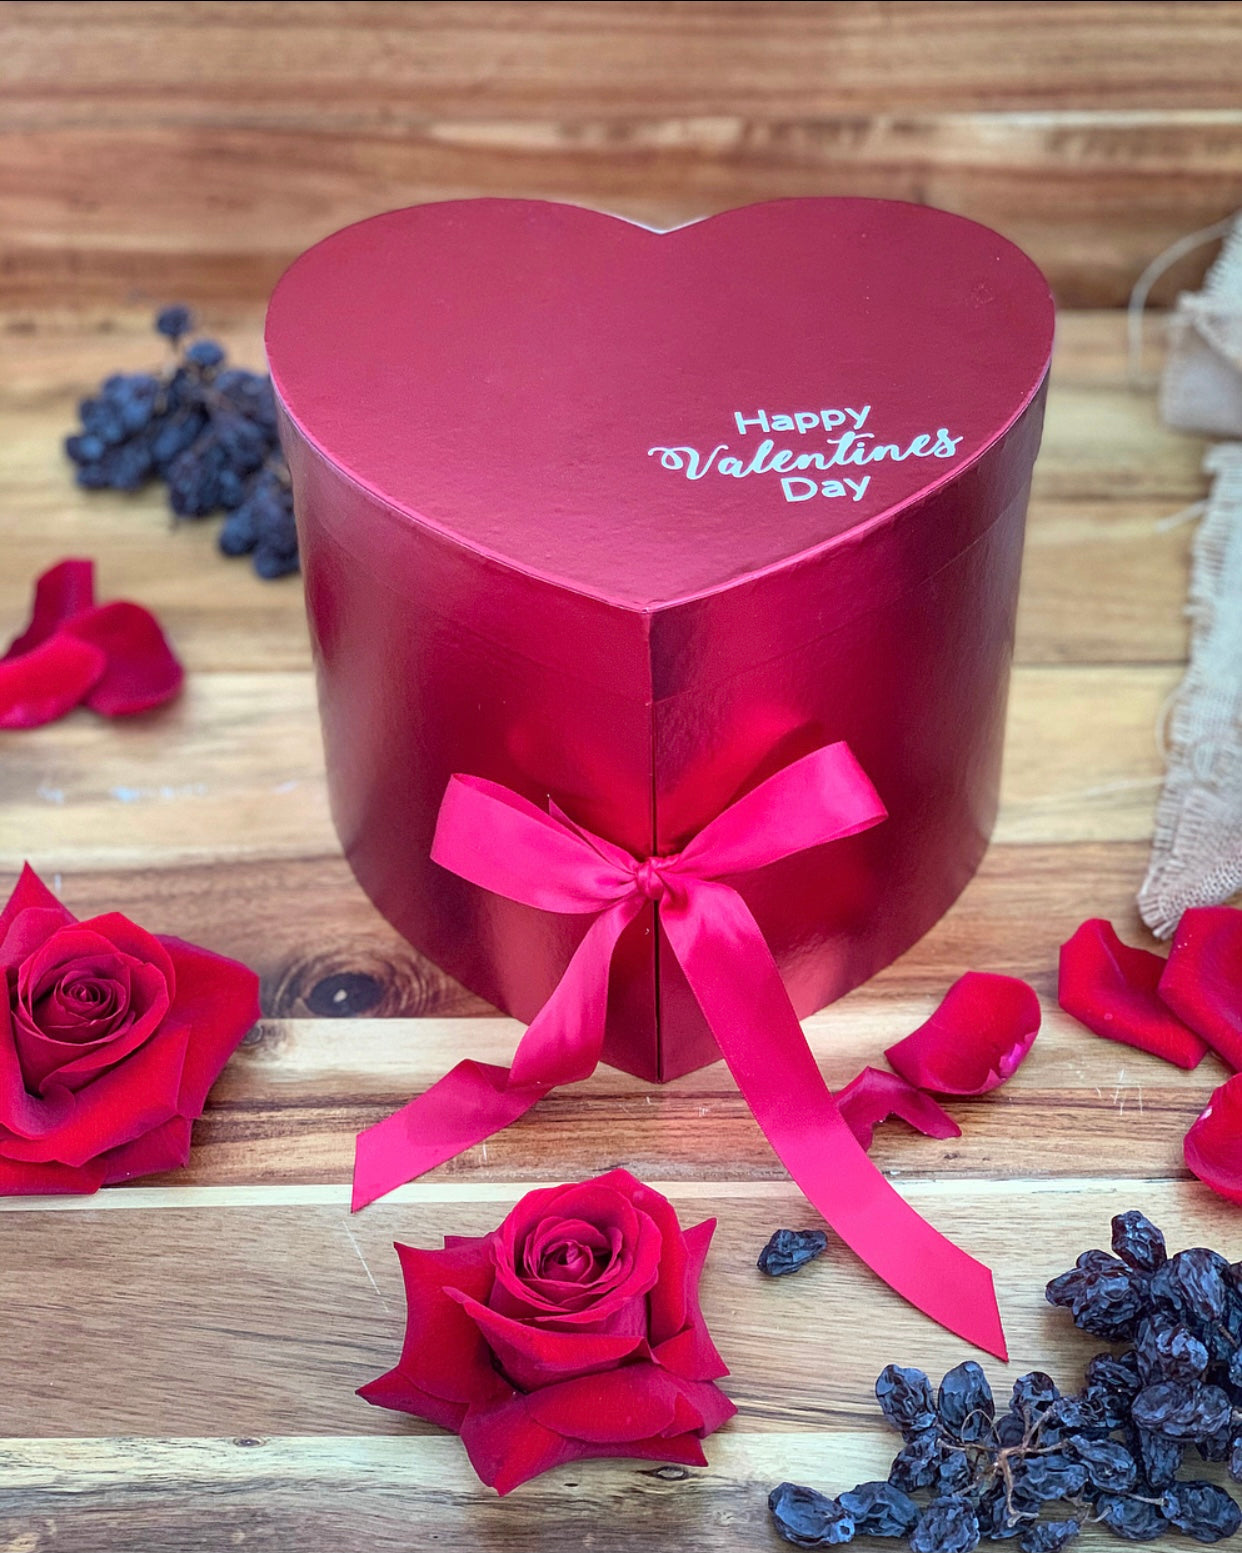 2 in 1 Red Heart Box